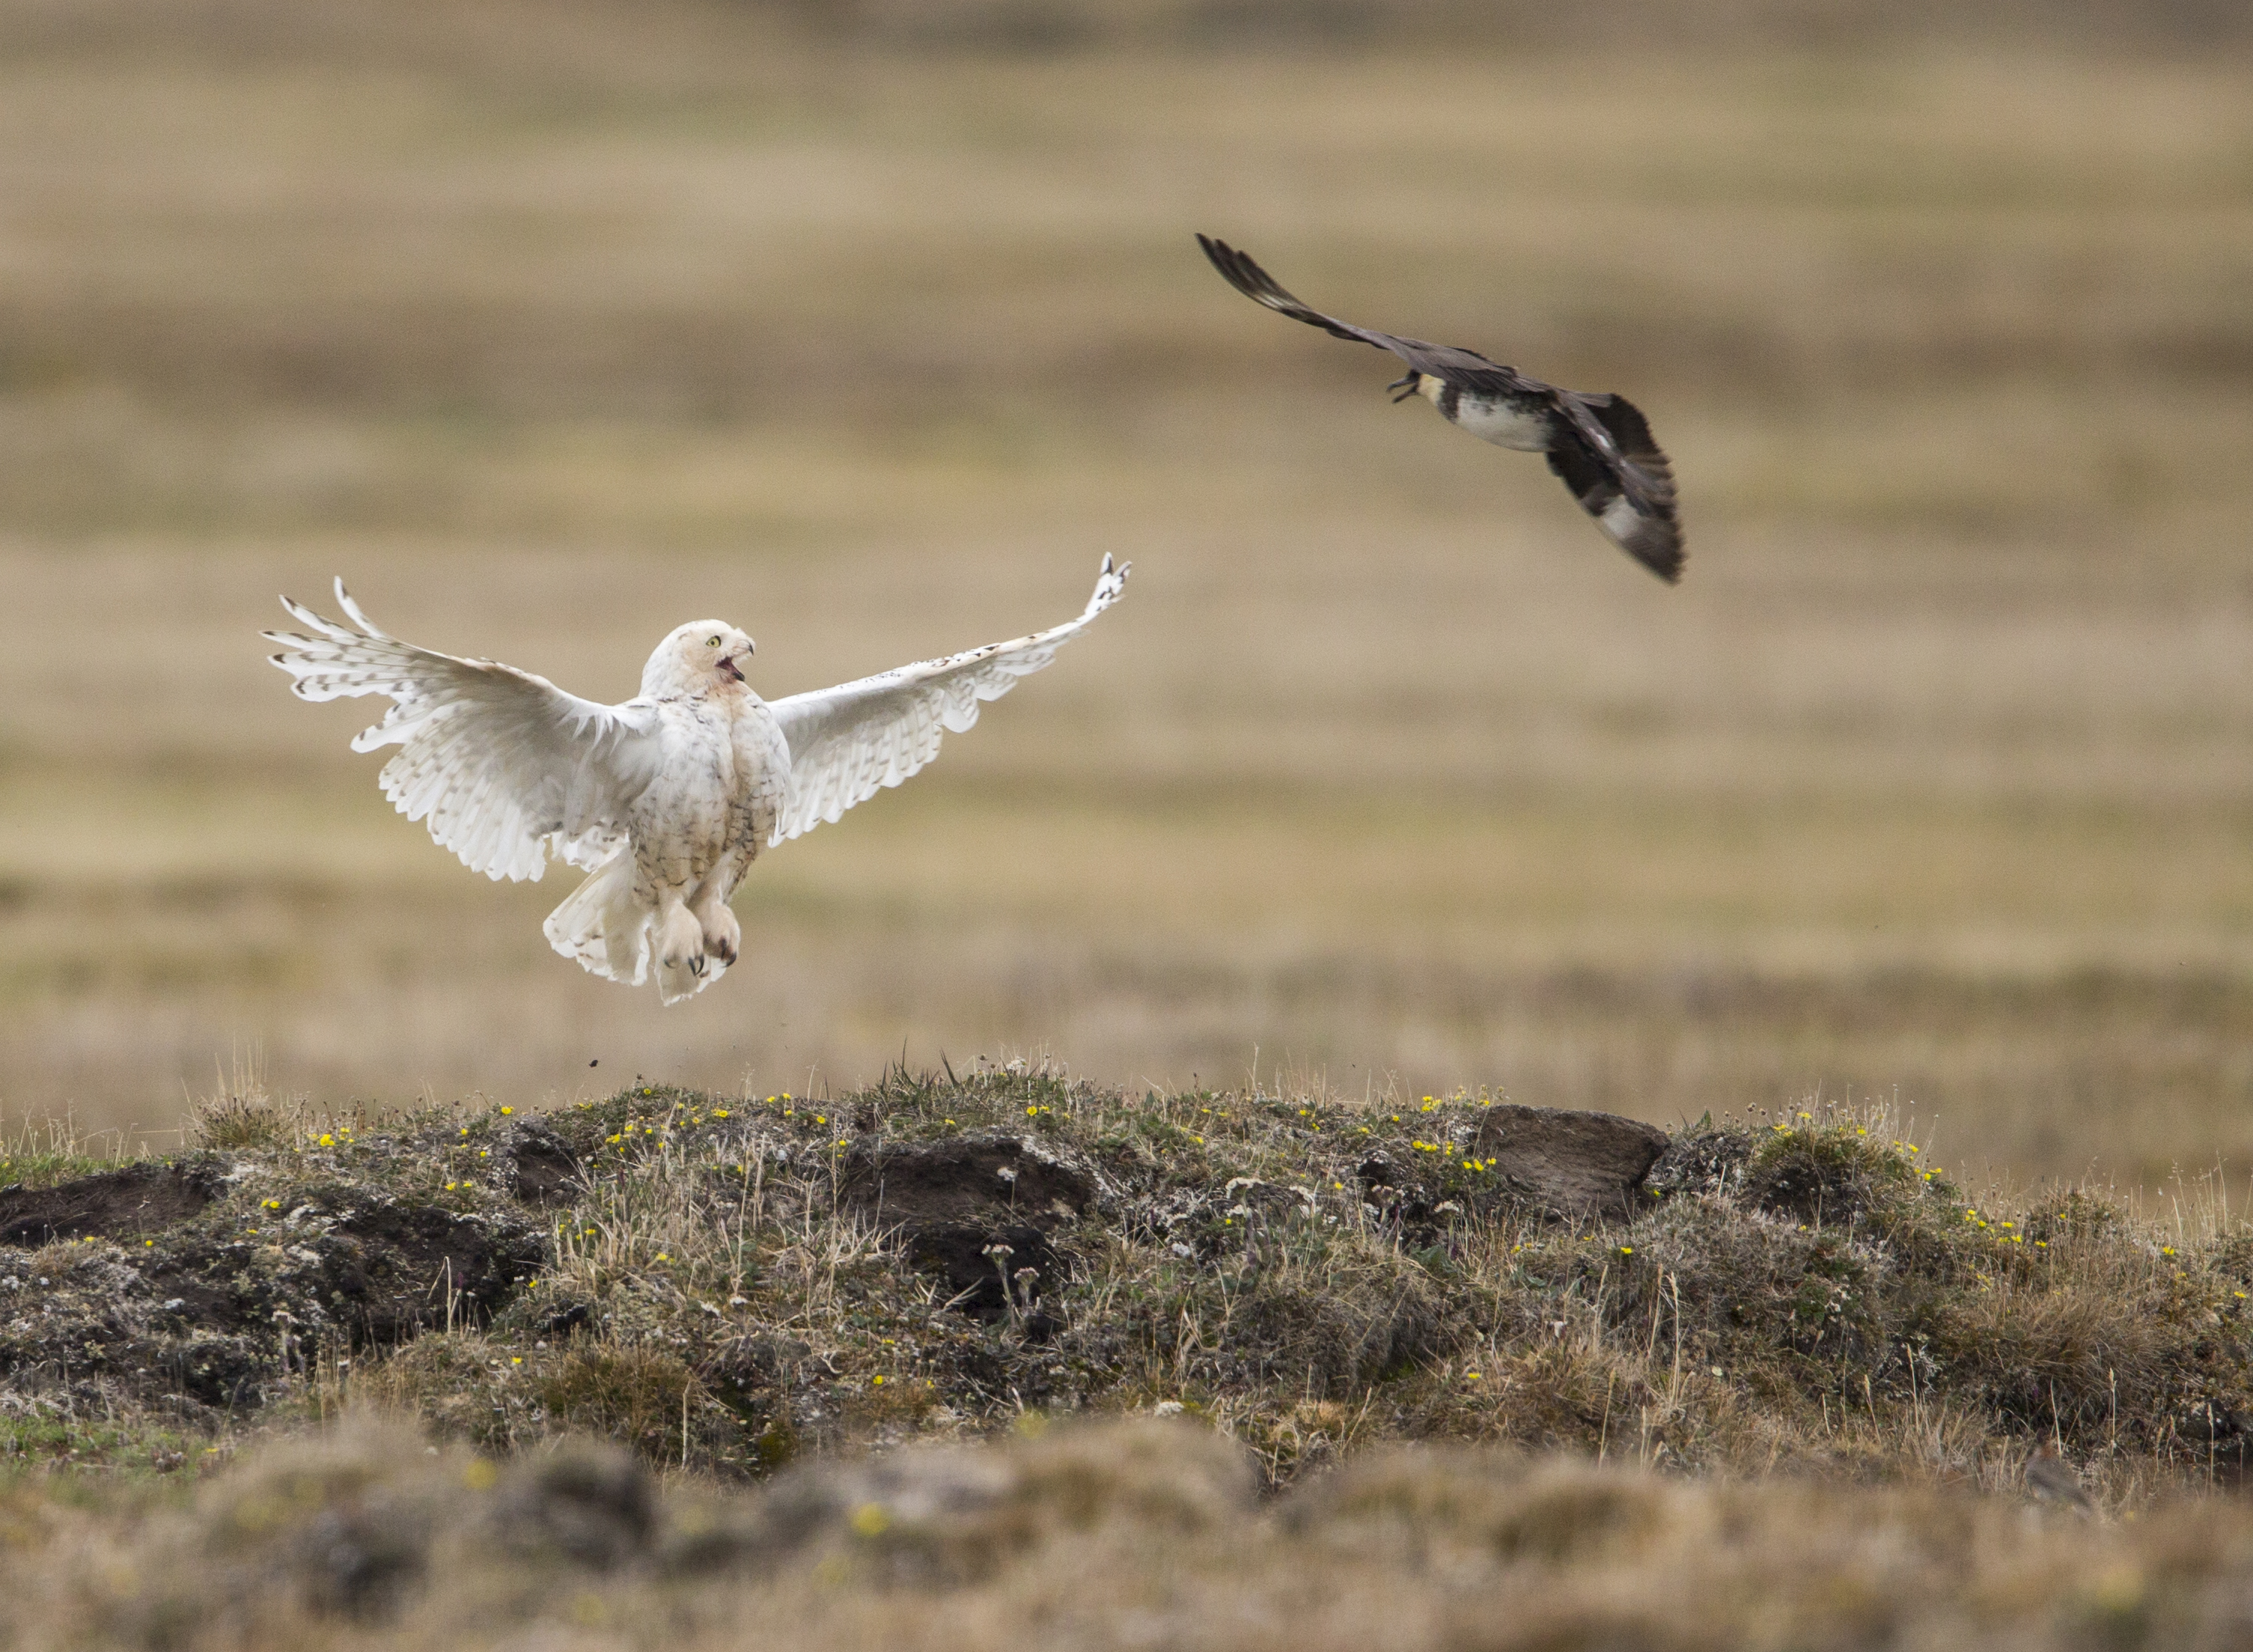 Stalking snowy owls - and the mystery of their wintertime